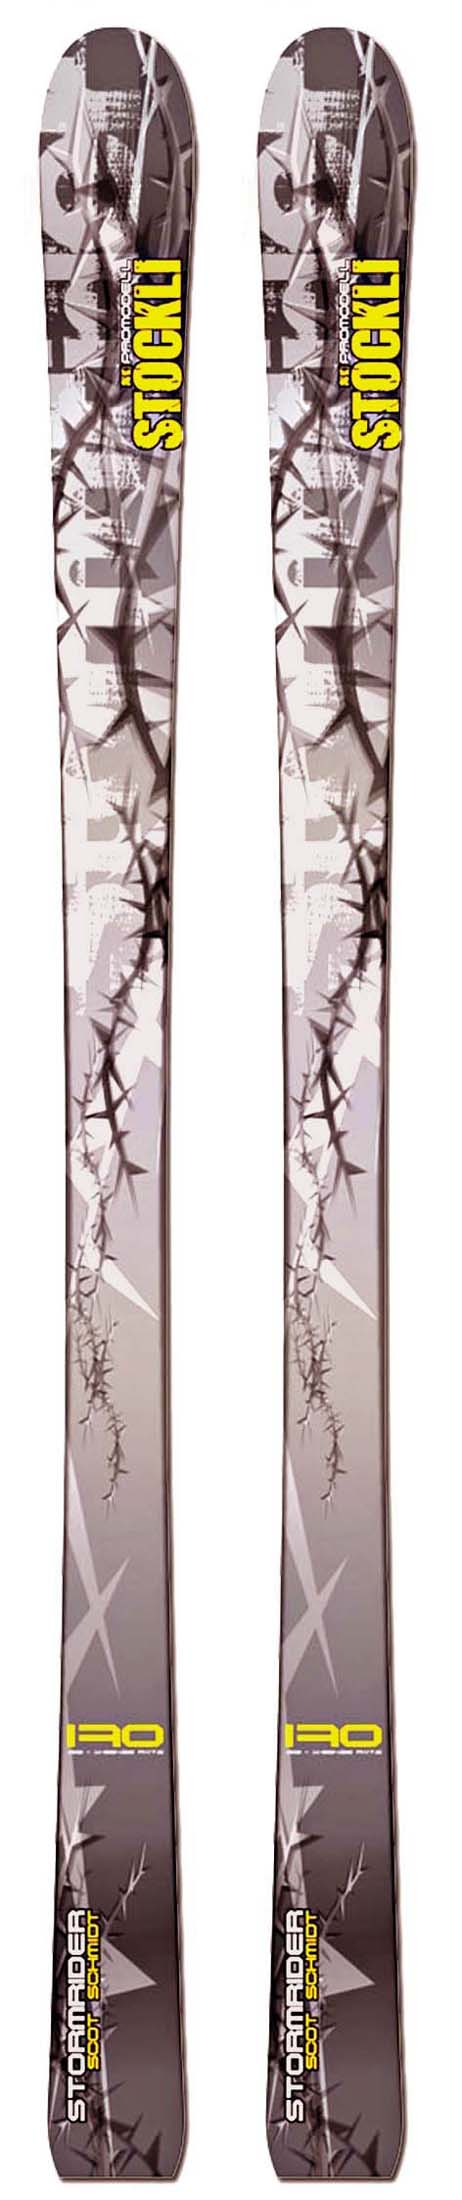 Stockli 10 - 11 Scot Schmidt Pro Skis (No Bindings / Flat) NEW !!  176cm